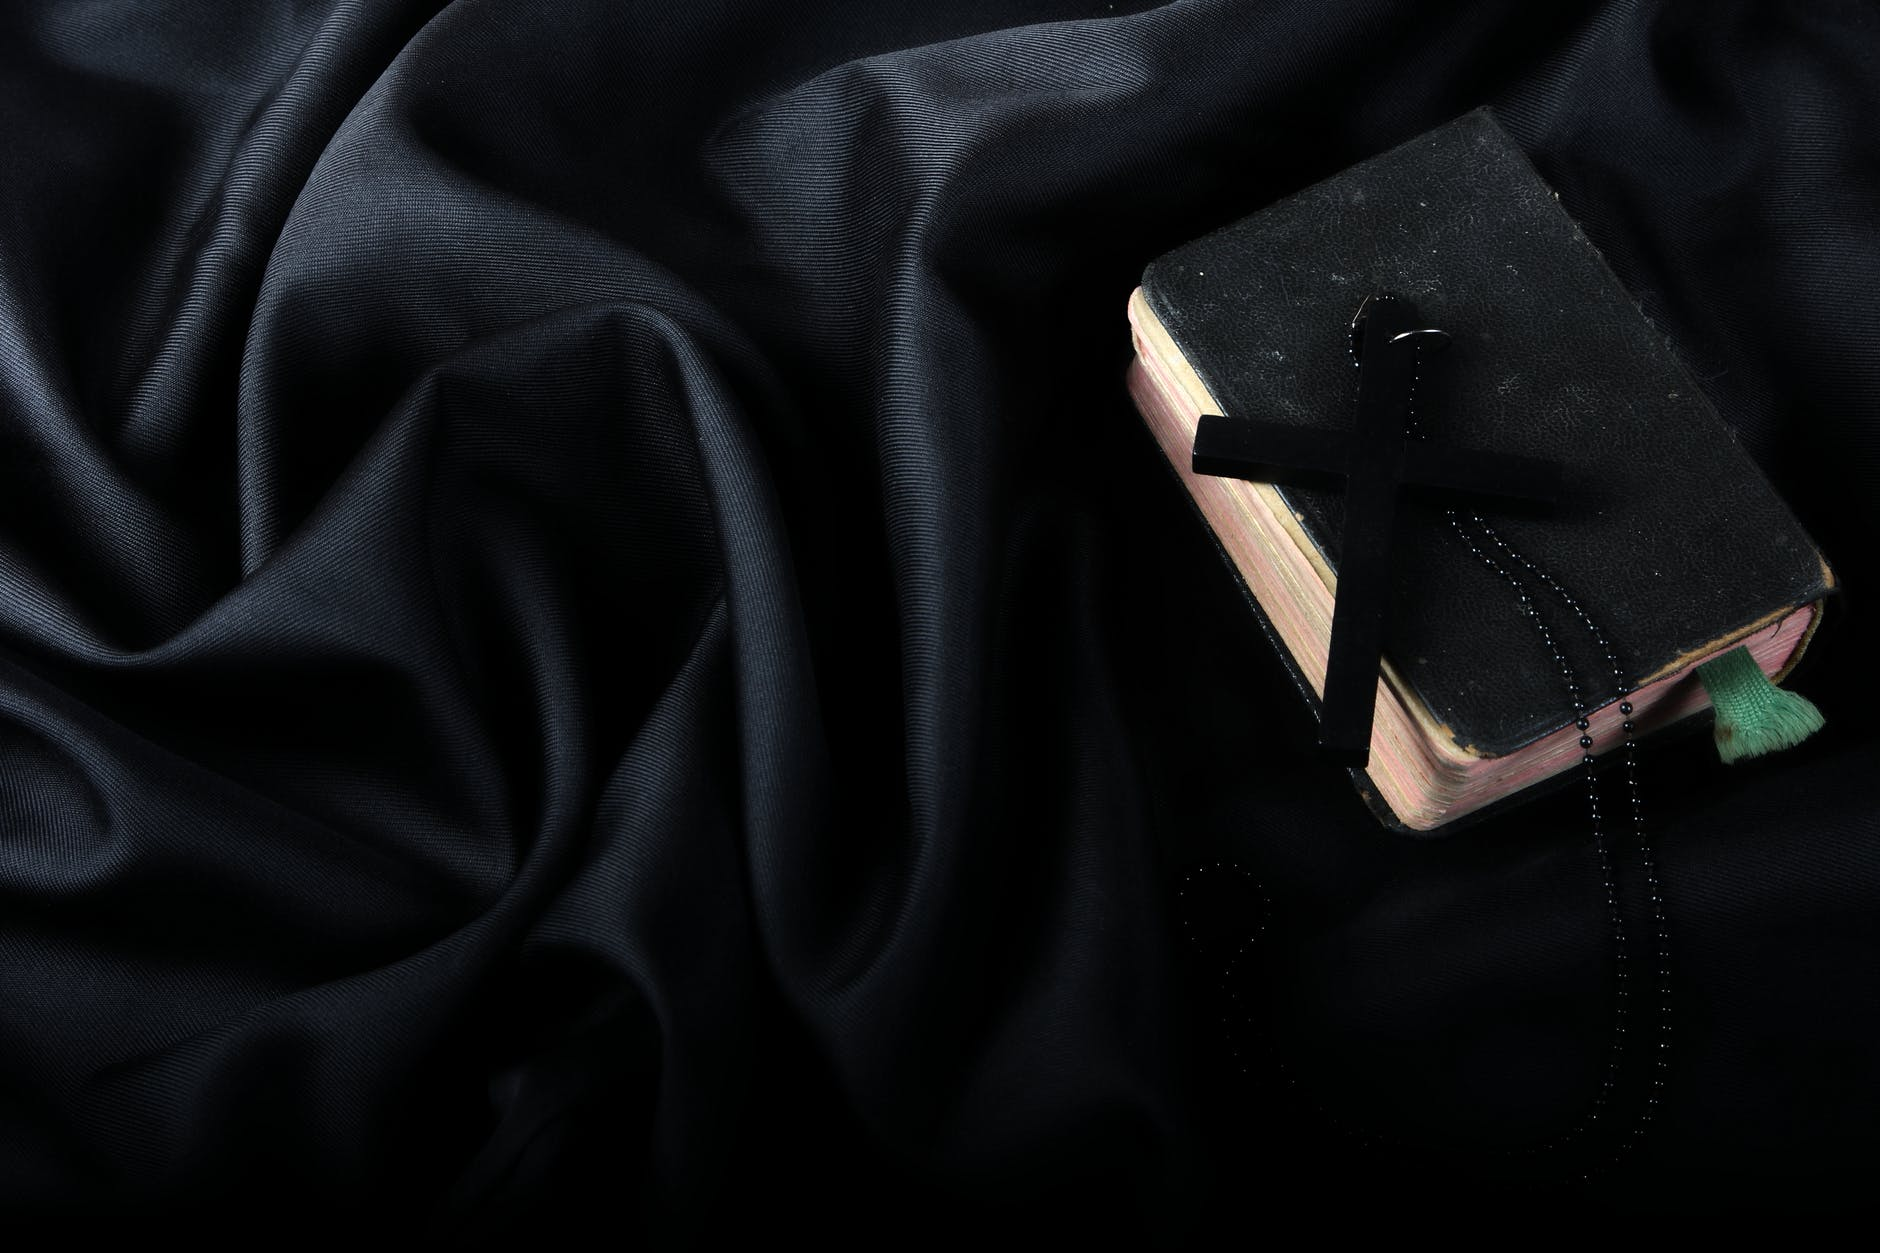 black cross on hard cover bible on top of black textile